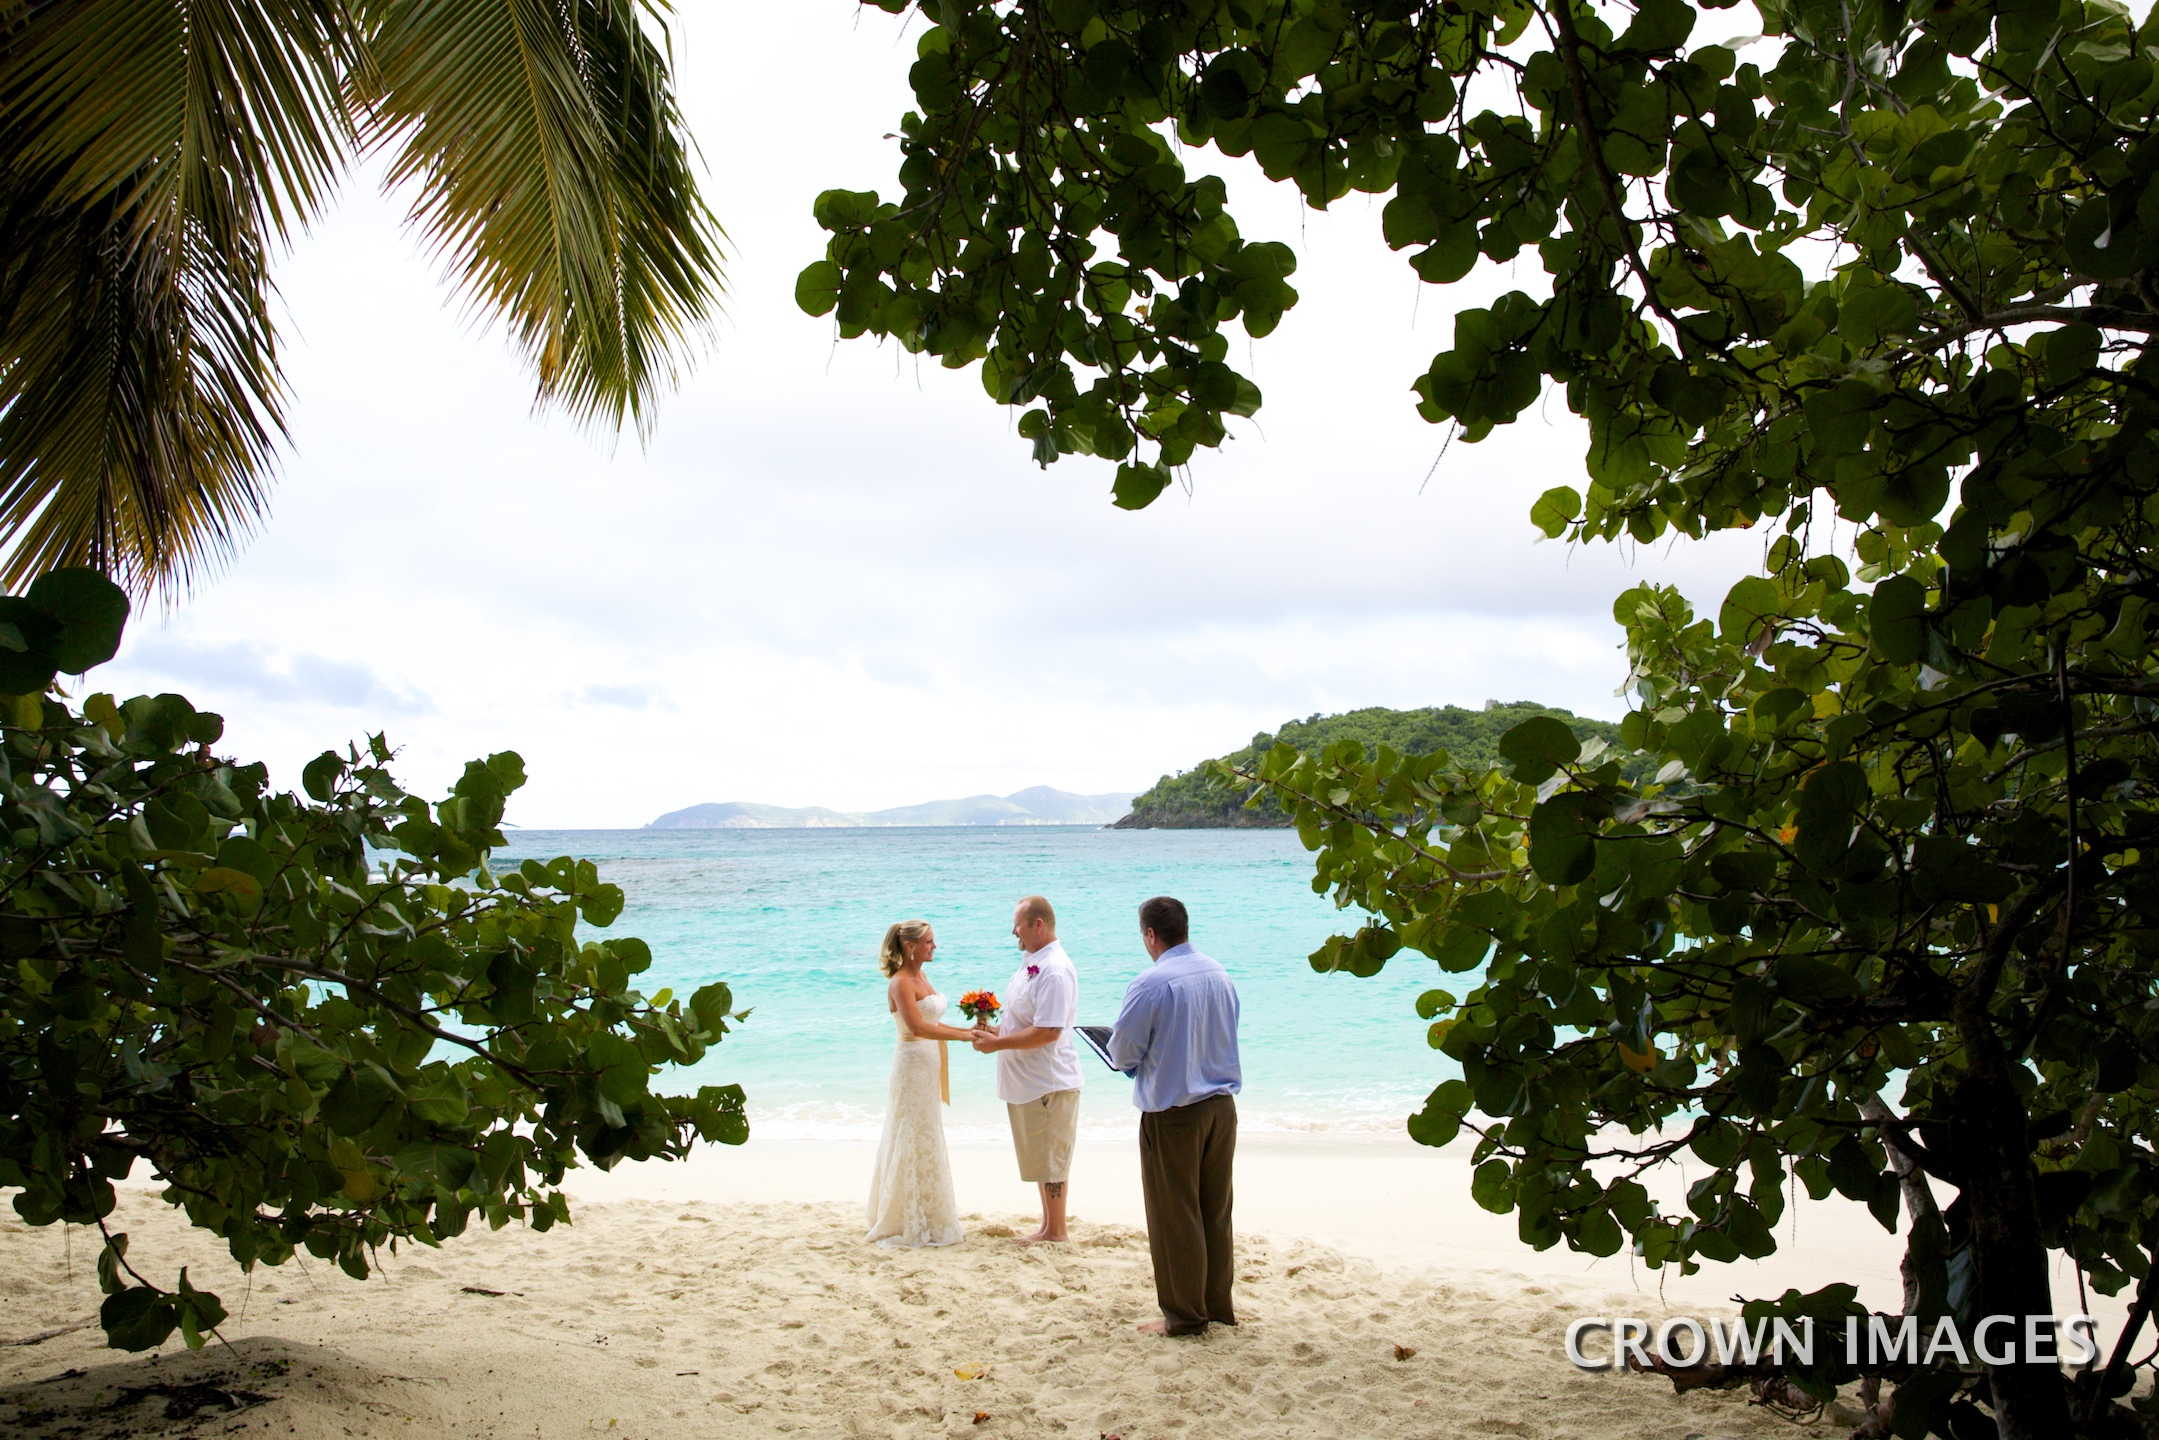 crown images photography virgin islands